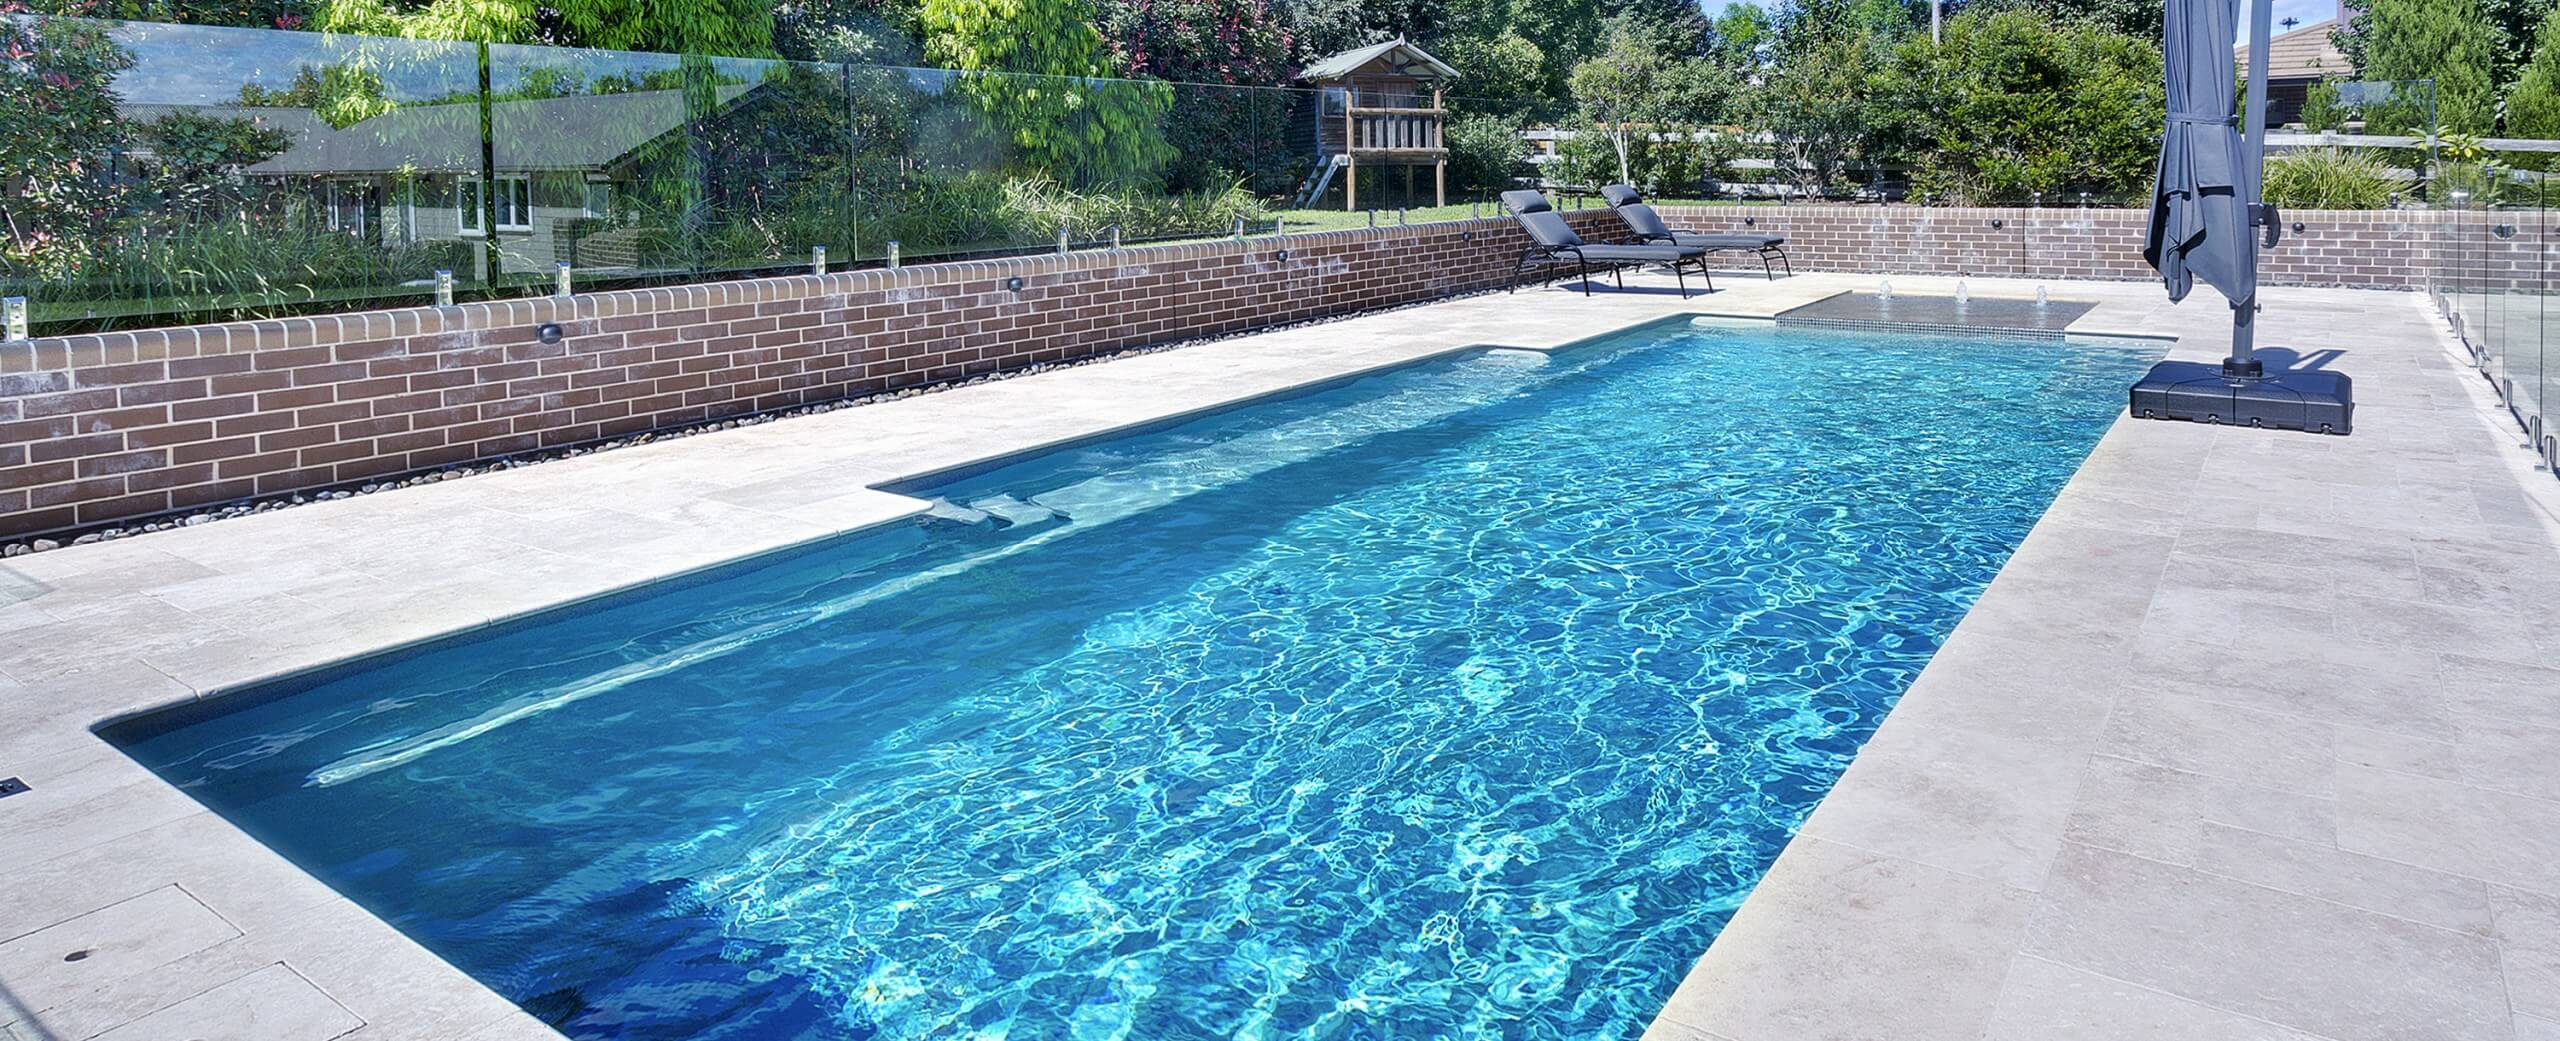 Compass Pools Australia Vogue pool shape header with Sunpod and Bubbler on the short side